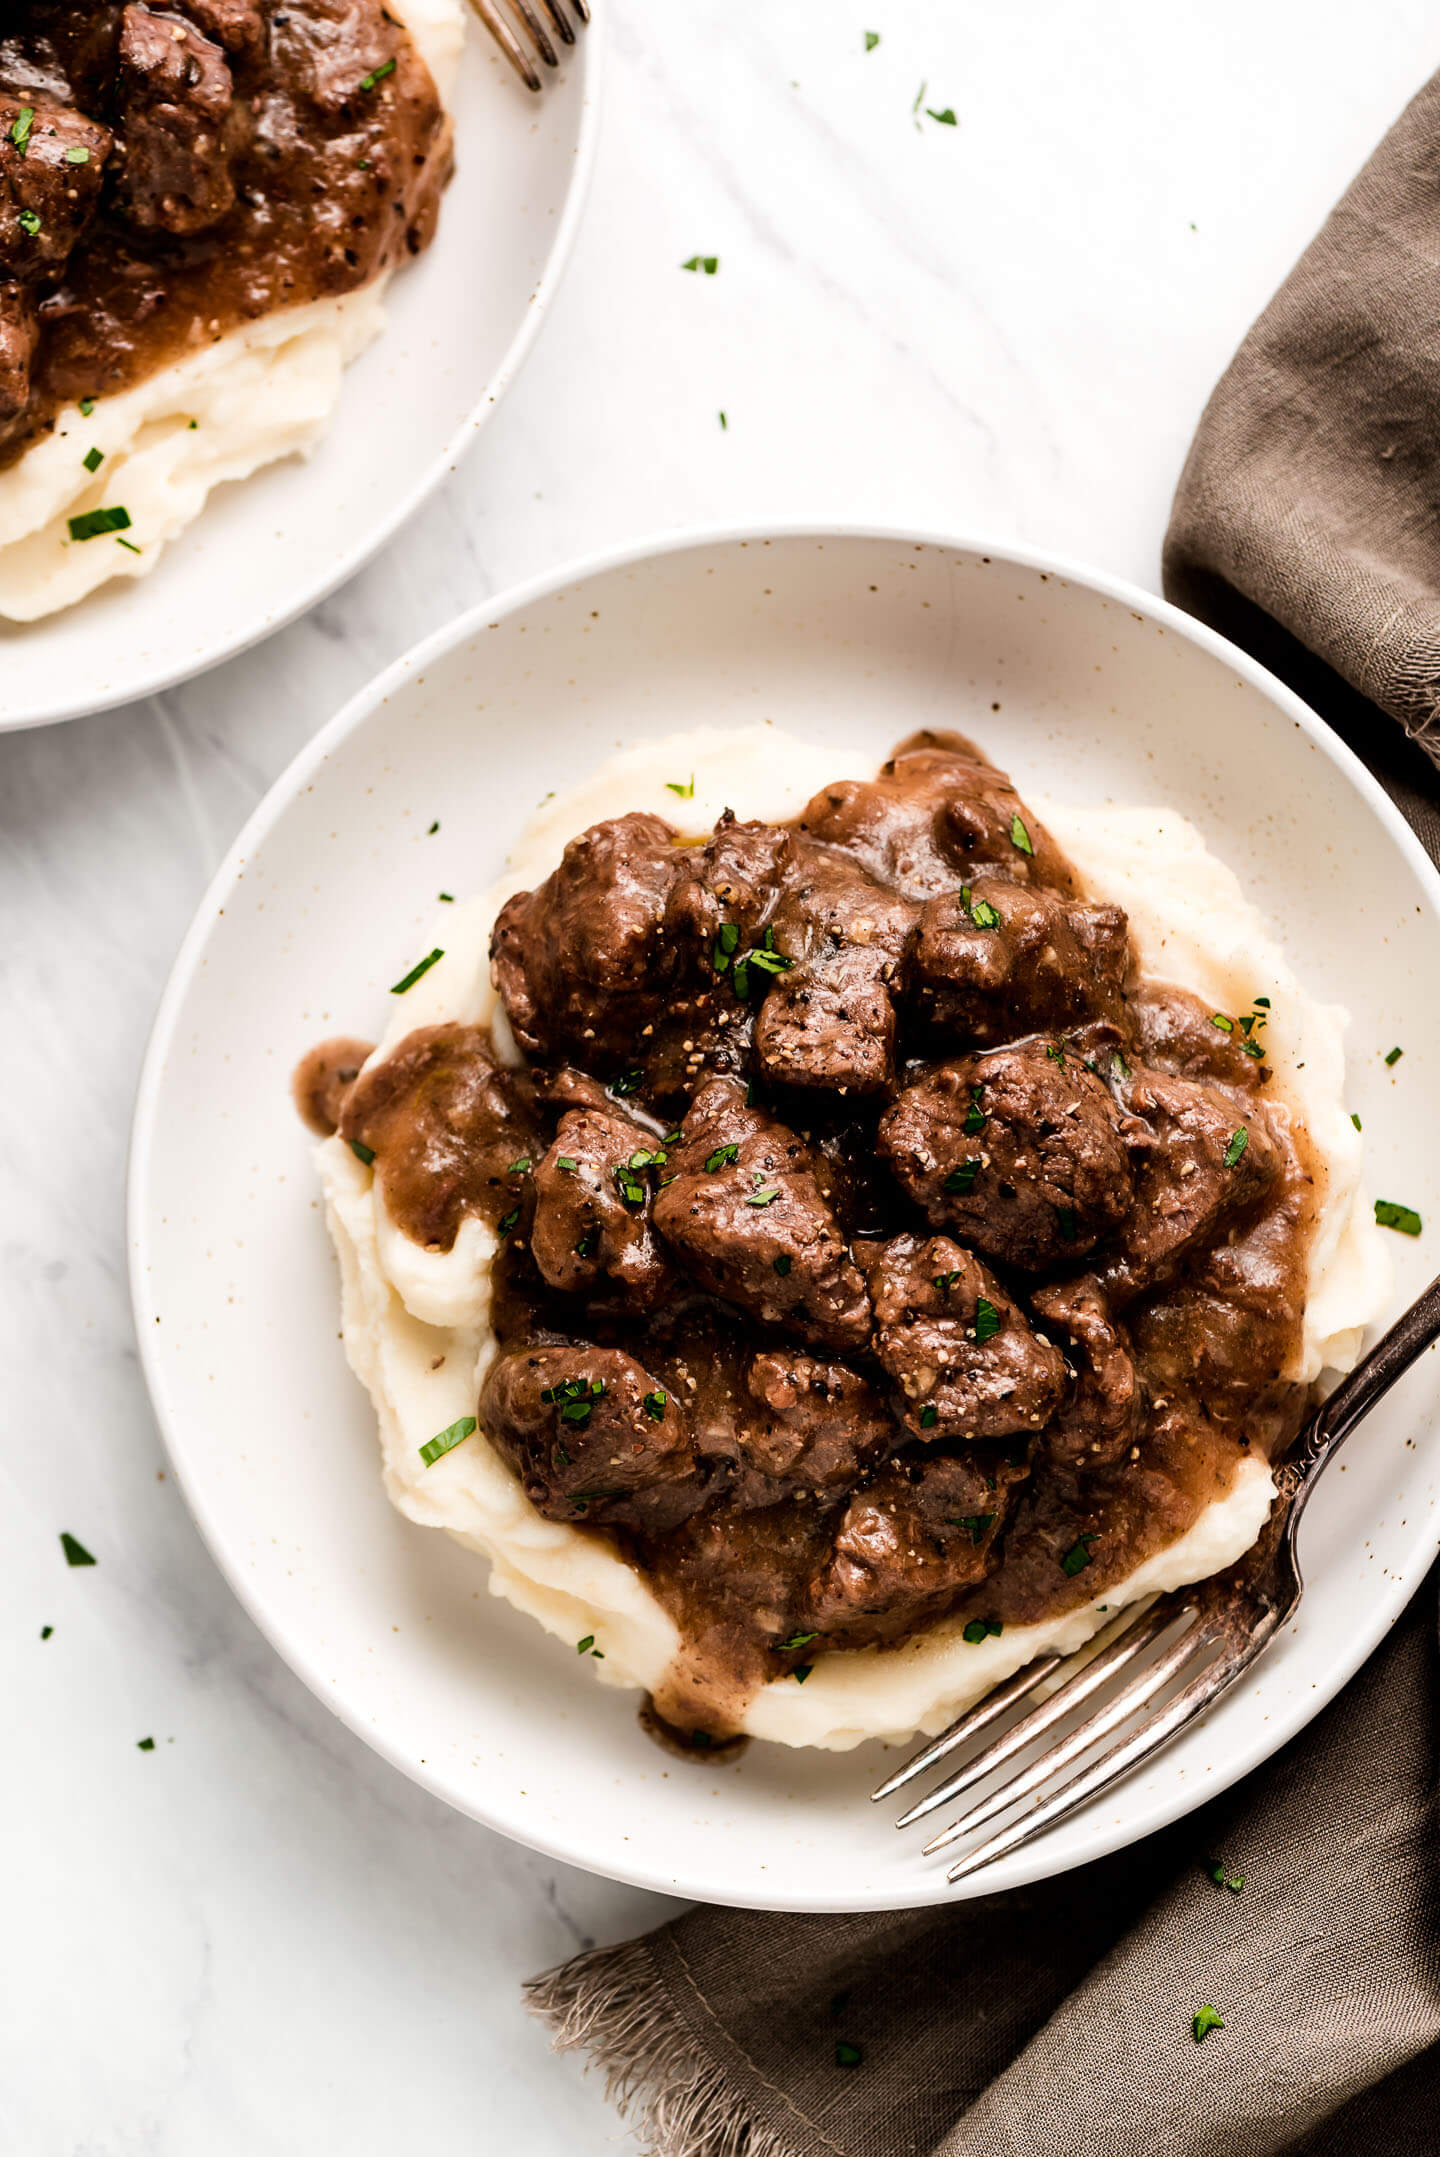 Two bowls of bite size pieces of beef with gravy over mashed potatoes.